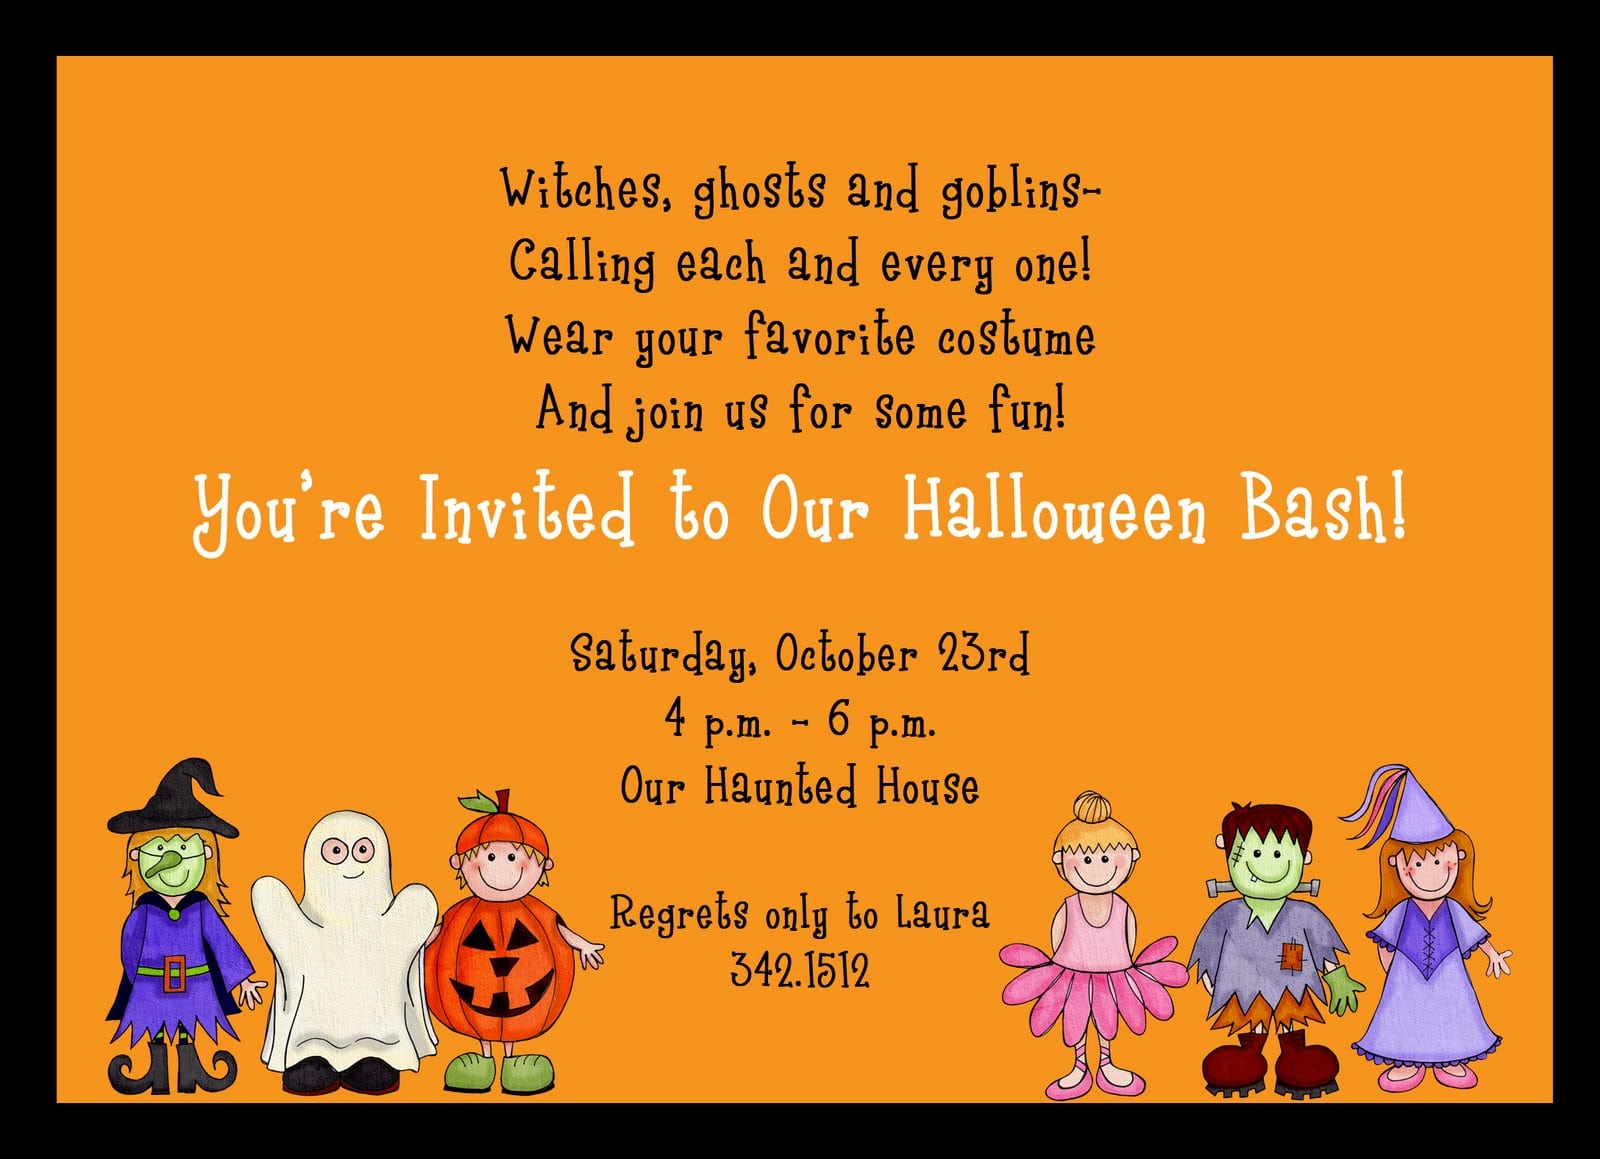 Halloween Party Cards Ideas About Halloween Party Cards For Your